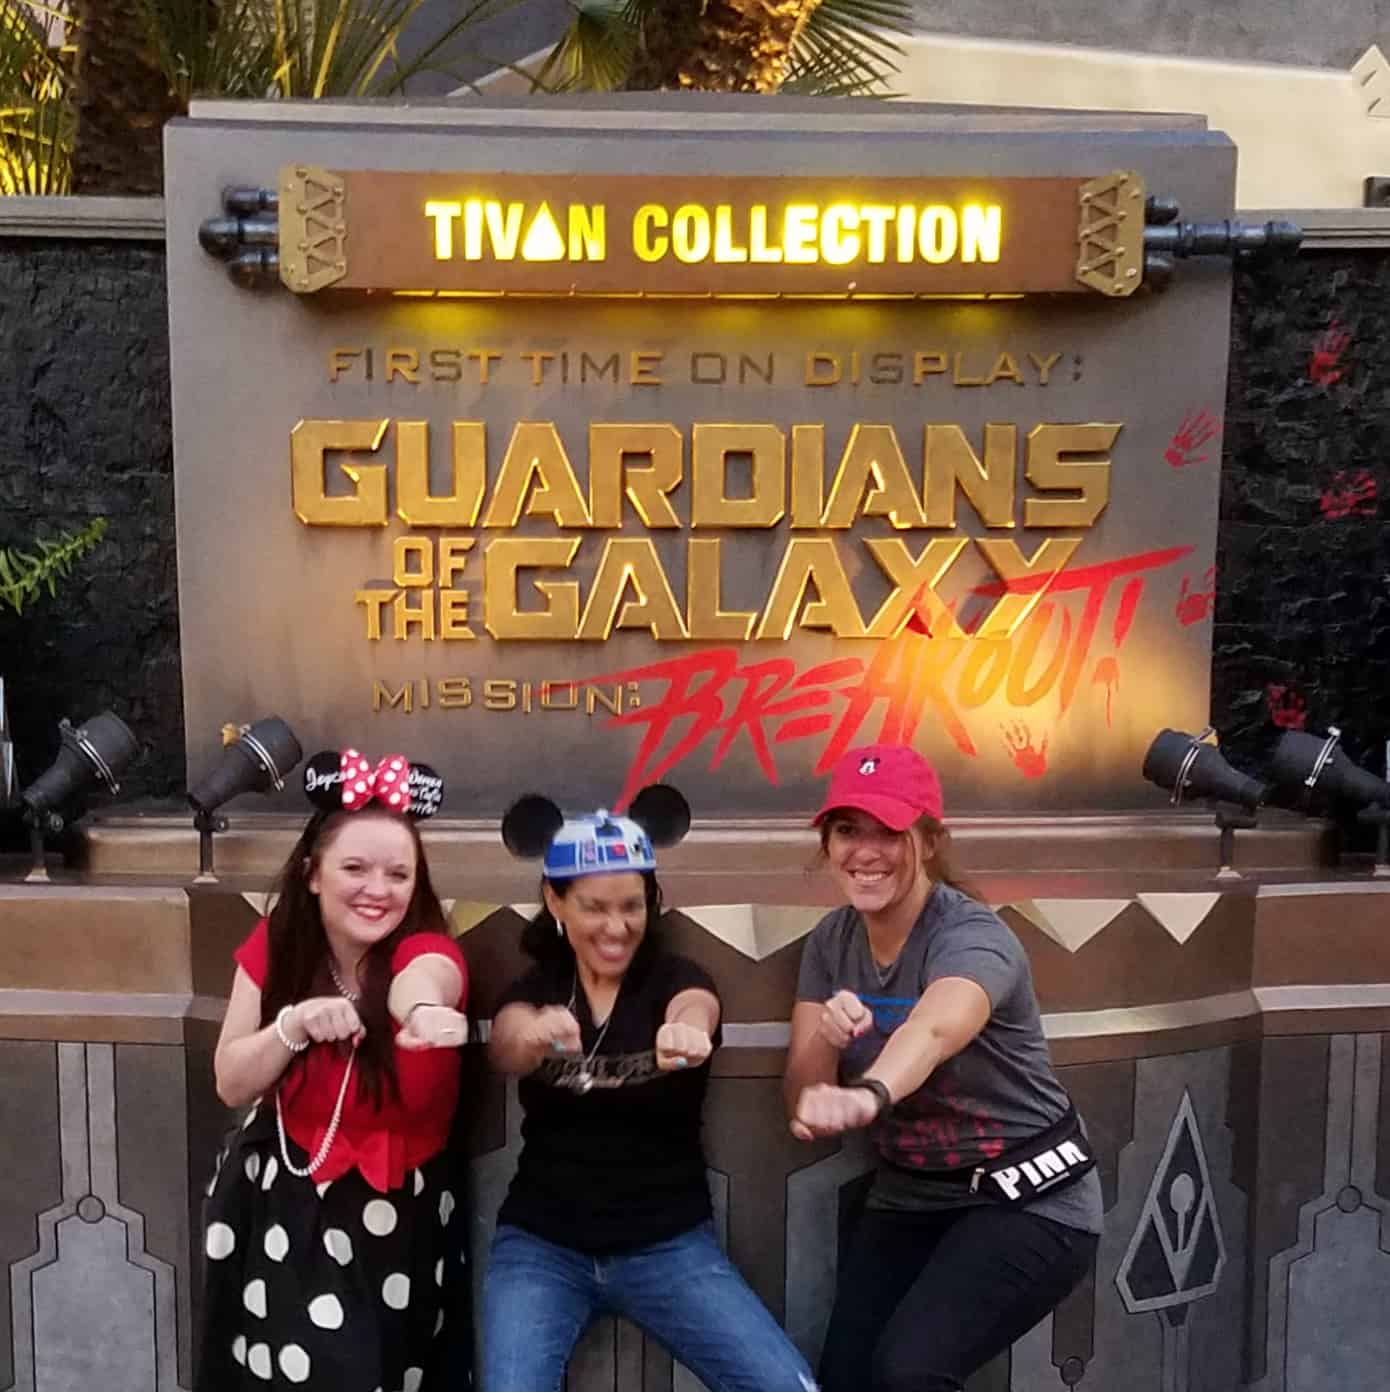 While at D23 Expo - Disneyland and Disney California Adventure - Summer of Heroes - Guardians of the Galaxy: Mission Breakout